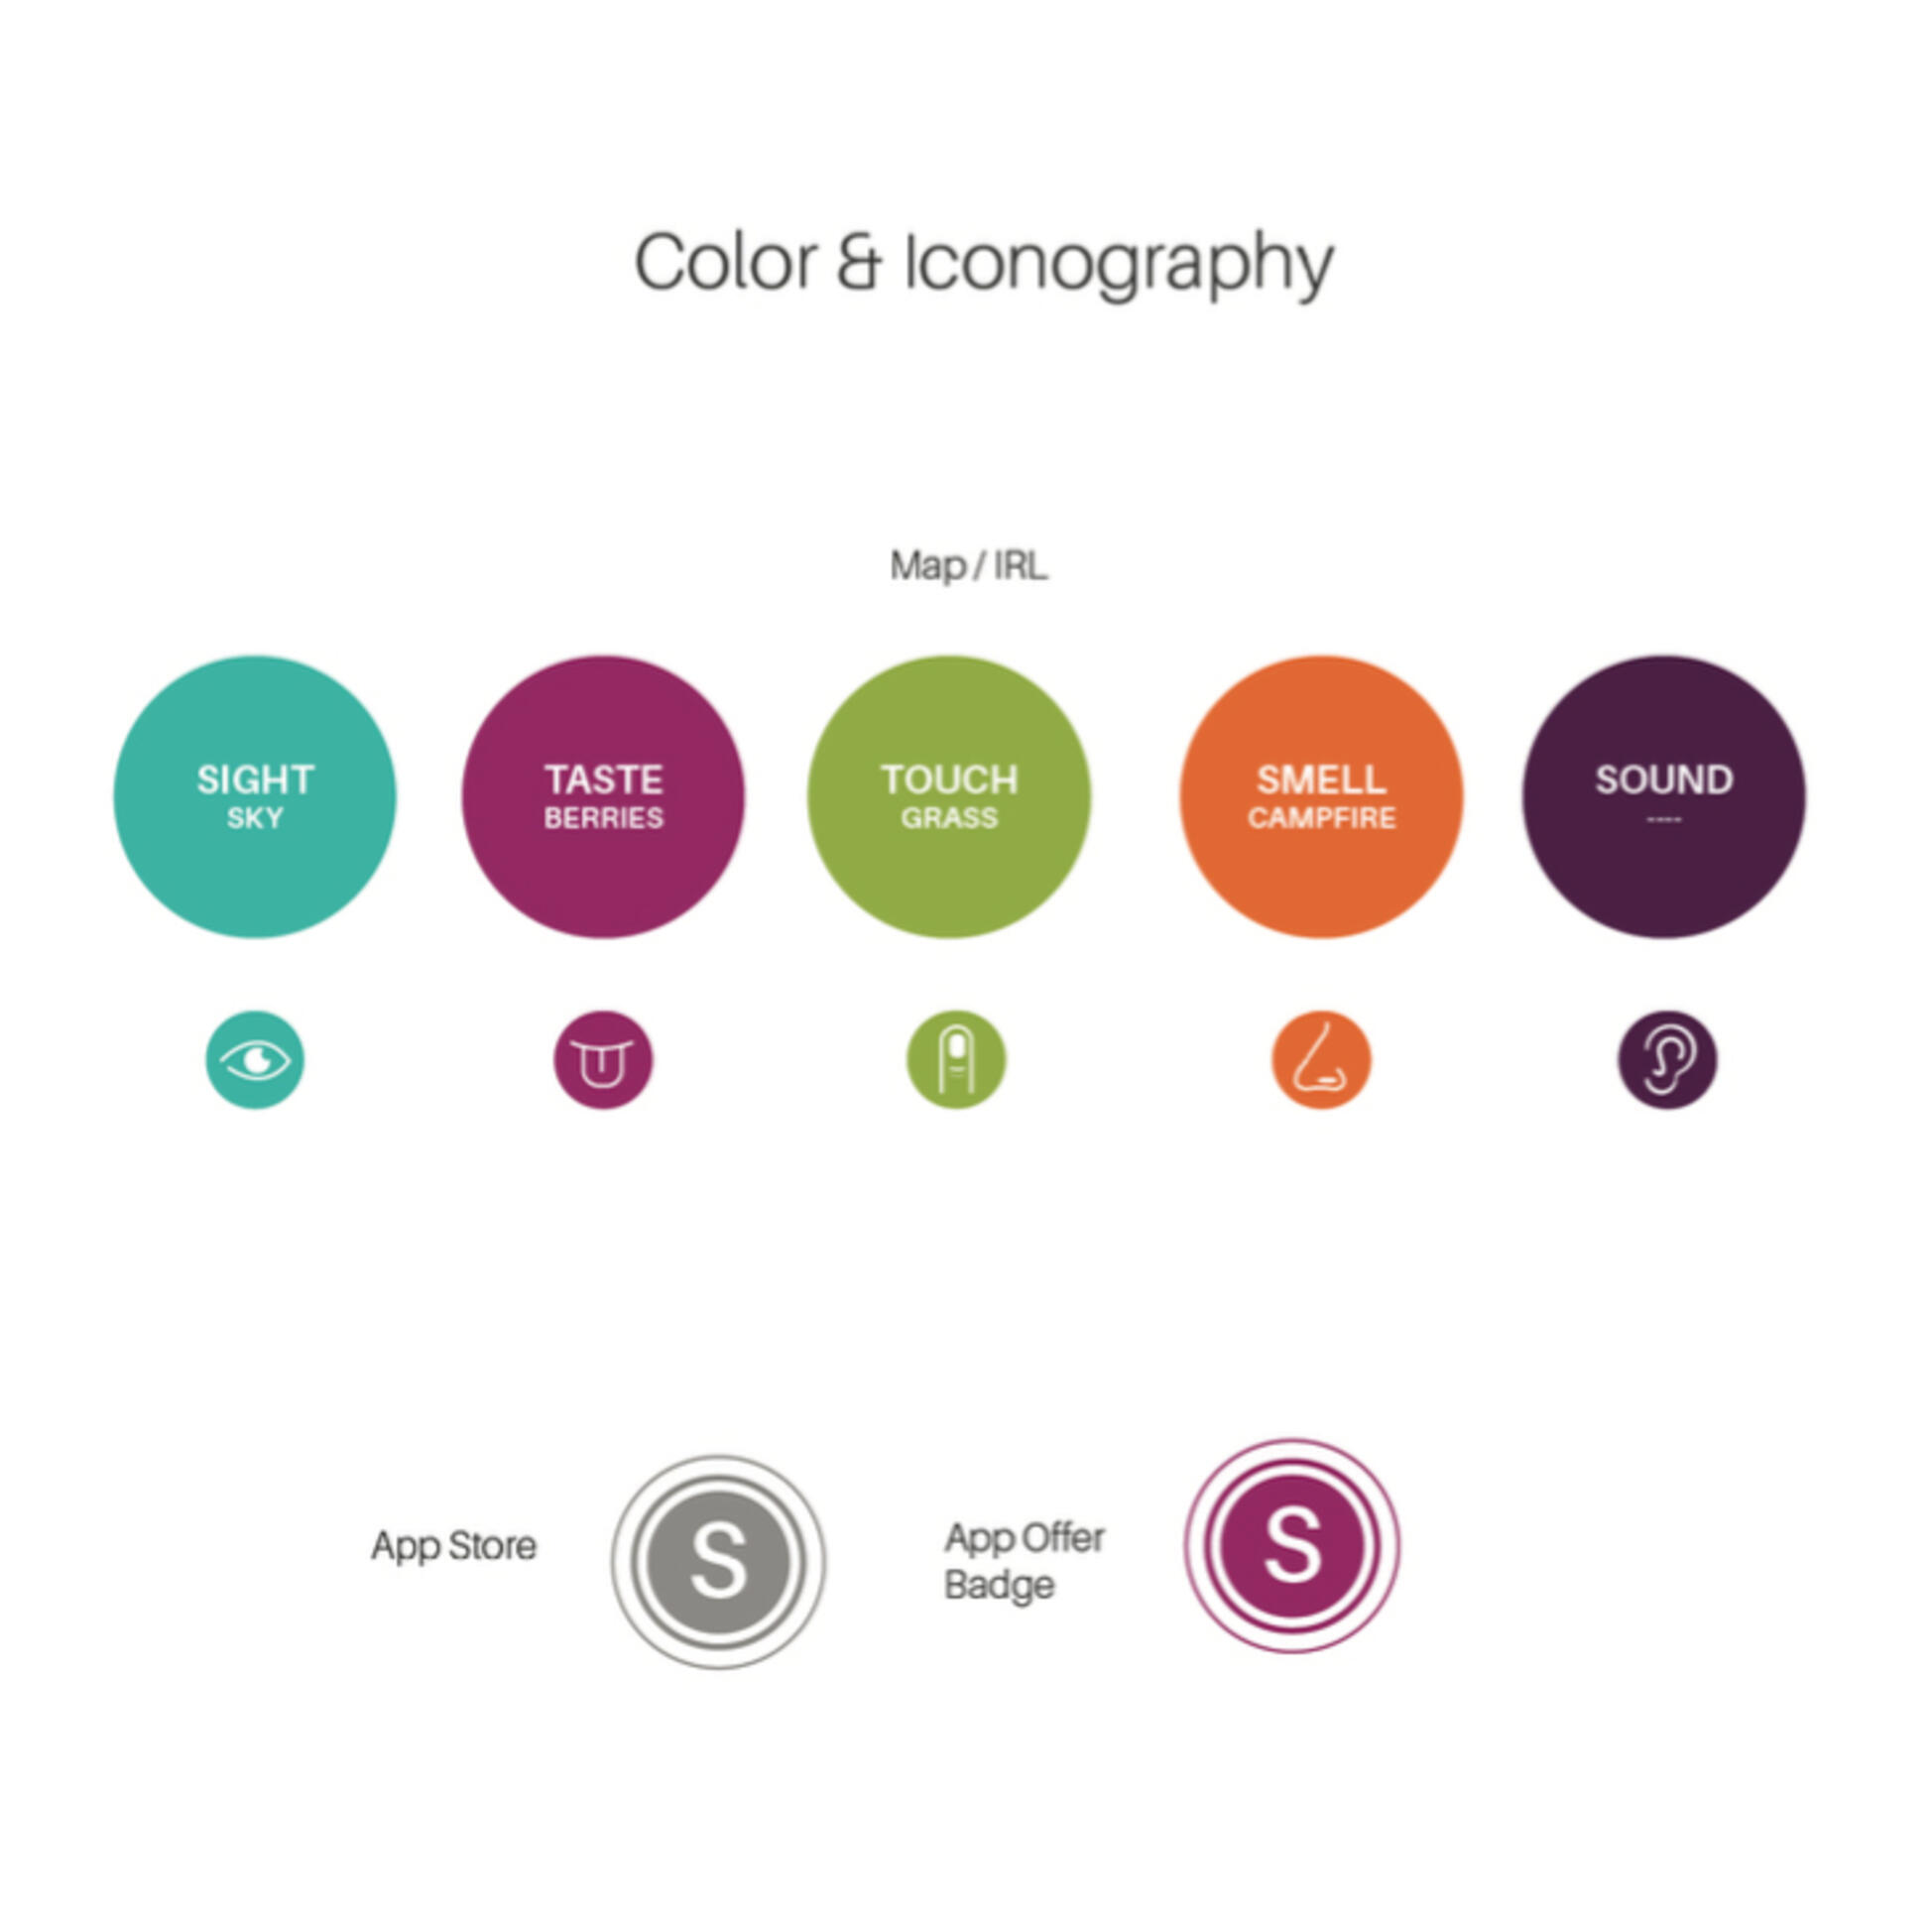 An app display encompassing the five senses and emphasizing color and iconography display. ; Angela Boline